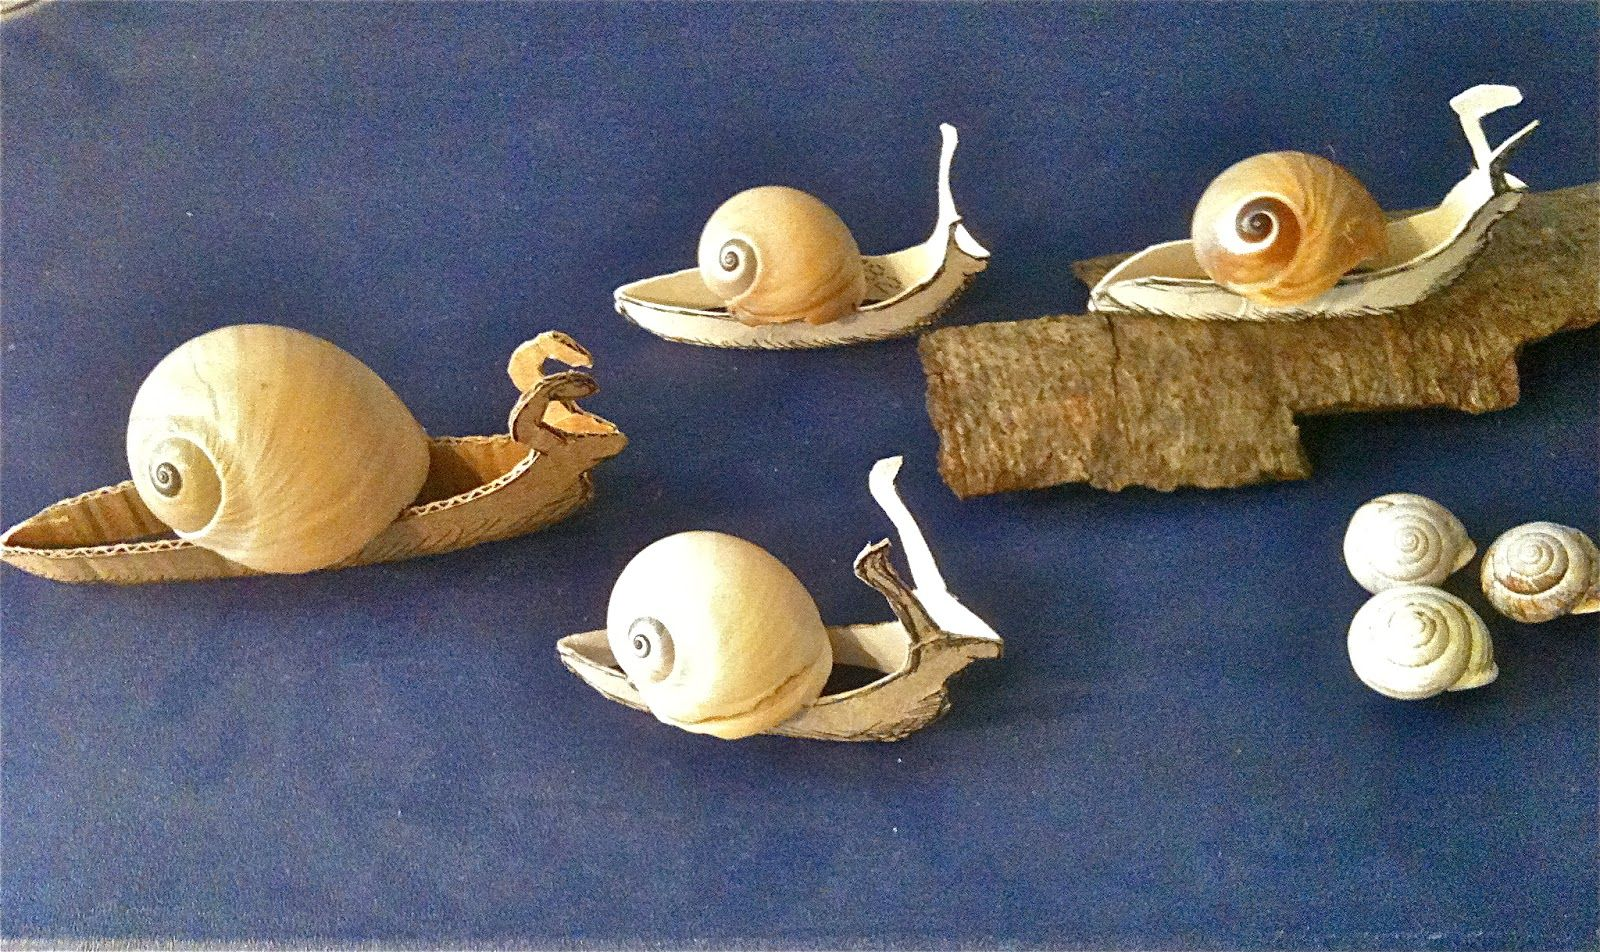 schnecken aus toilettenpapierrollen snails made from toilet paper rolls upcycling. Black Bedroom Furniture Sets. Home Design Ideas